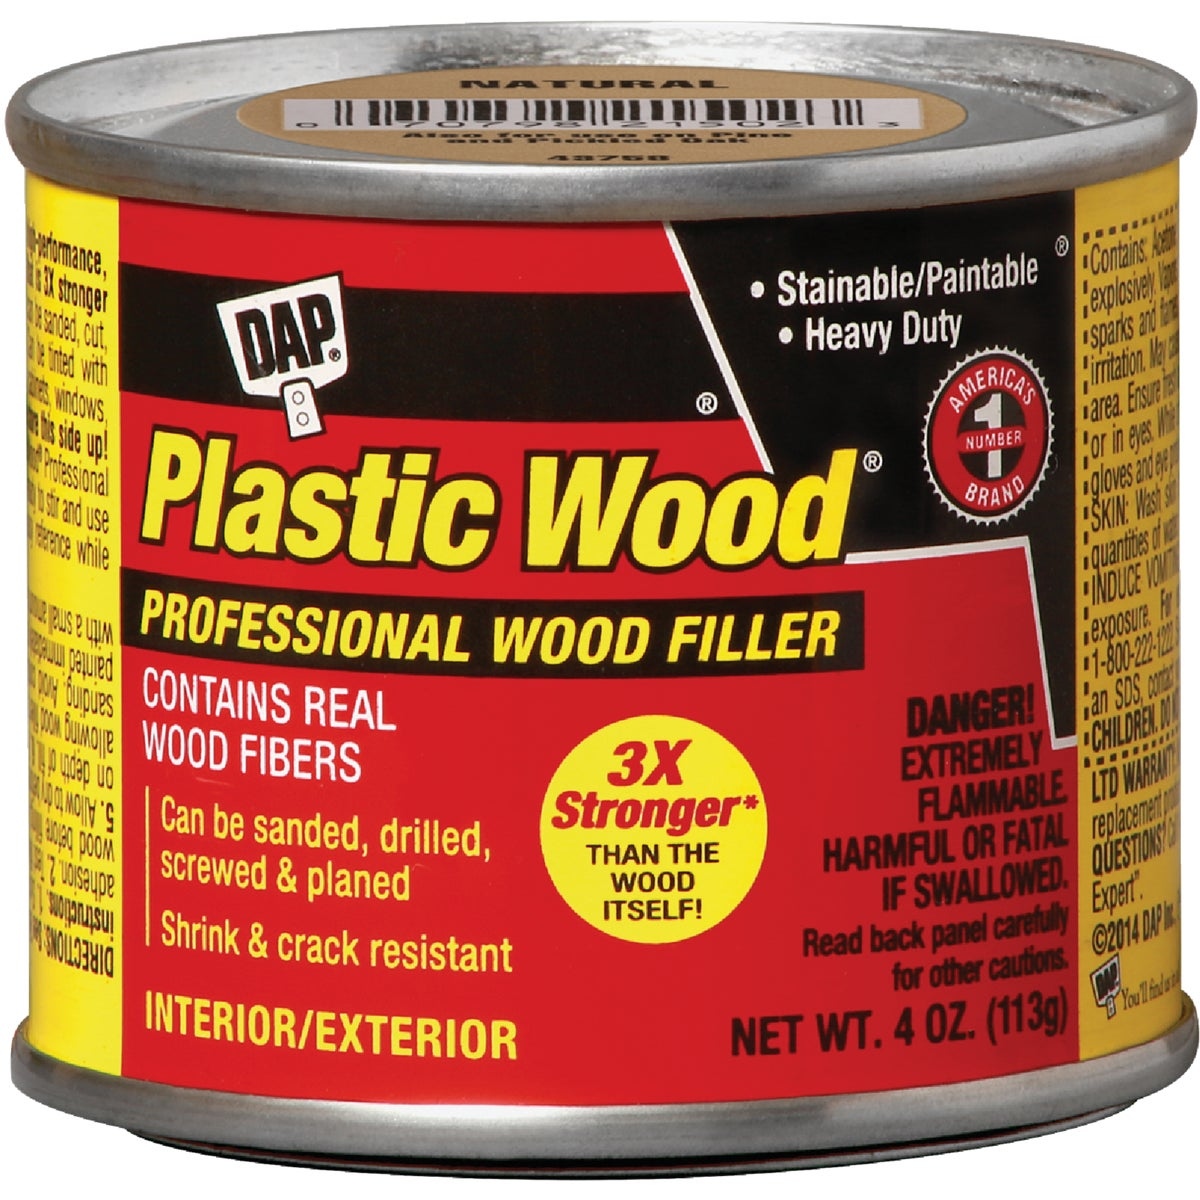 4OZ NATURAL PLASTIC WOOD - 21502 by Dap Inc